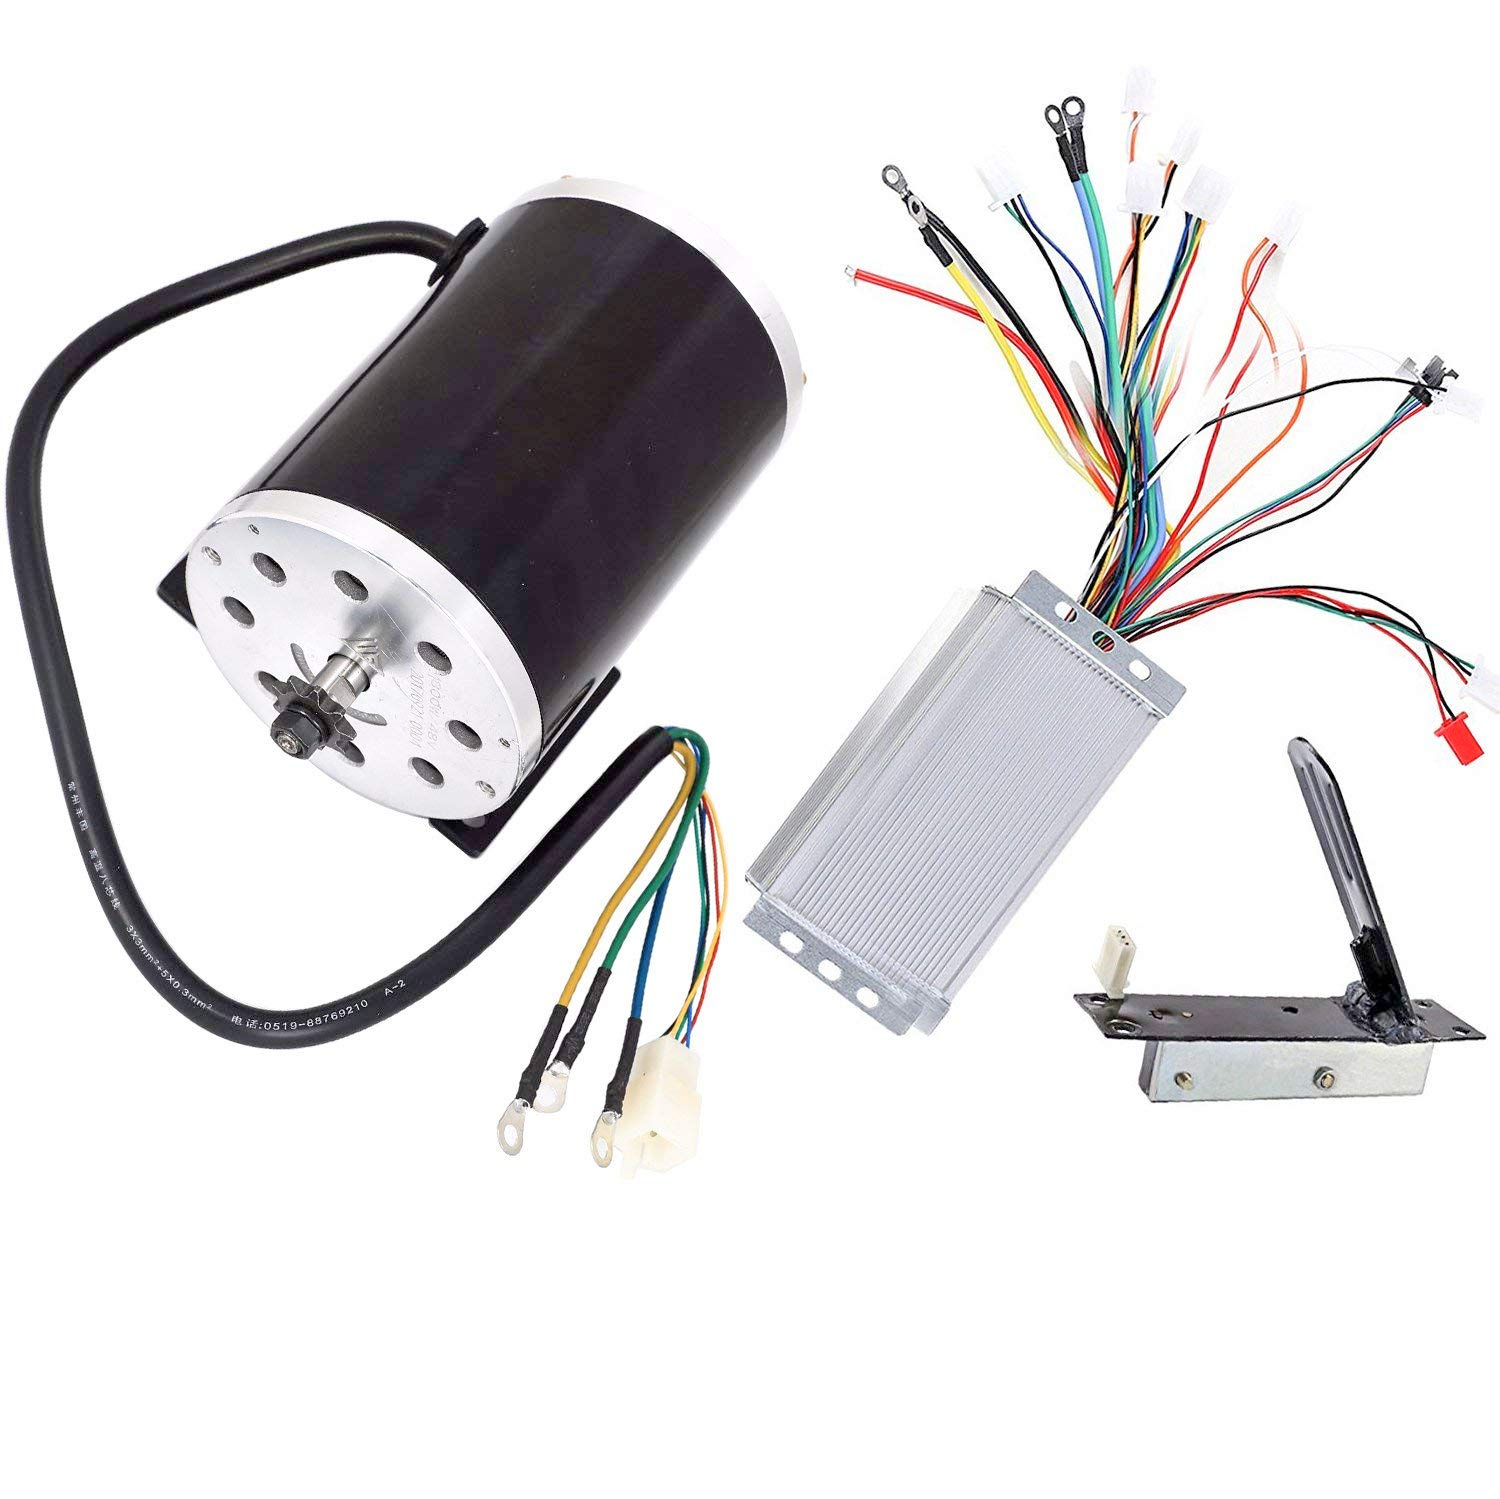 TDPRO 48V 1800W Brushless Electric Motor and Controller and Throttle  Accelerator Pedal Set For Go Kart Scooter E Bike Motorized Bicycle ATV  Moped Mini